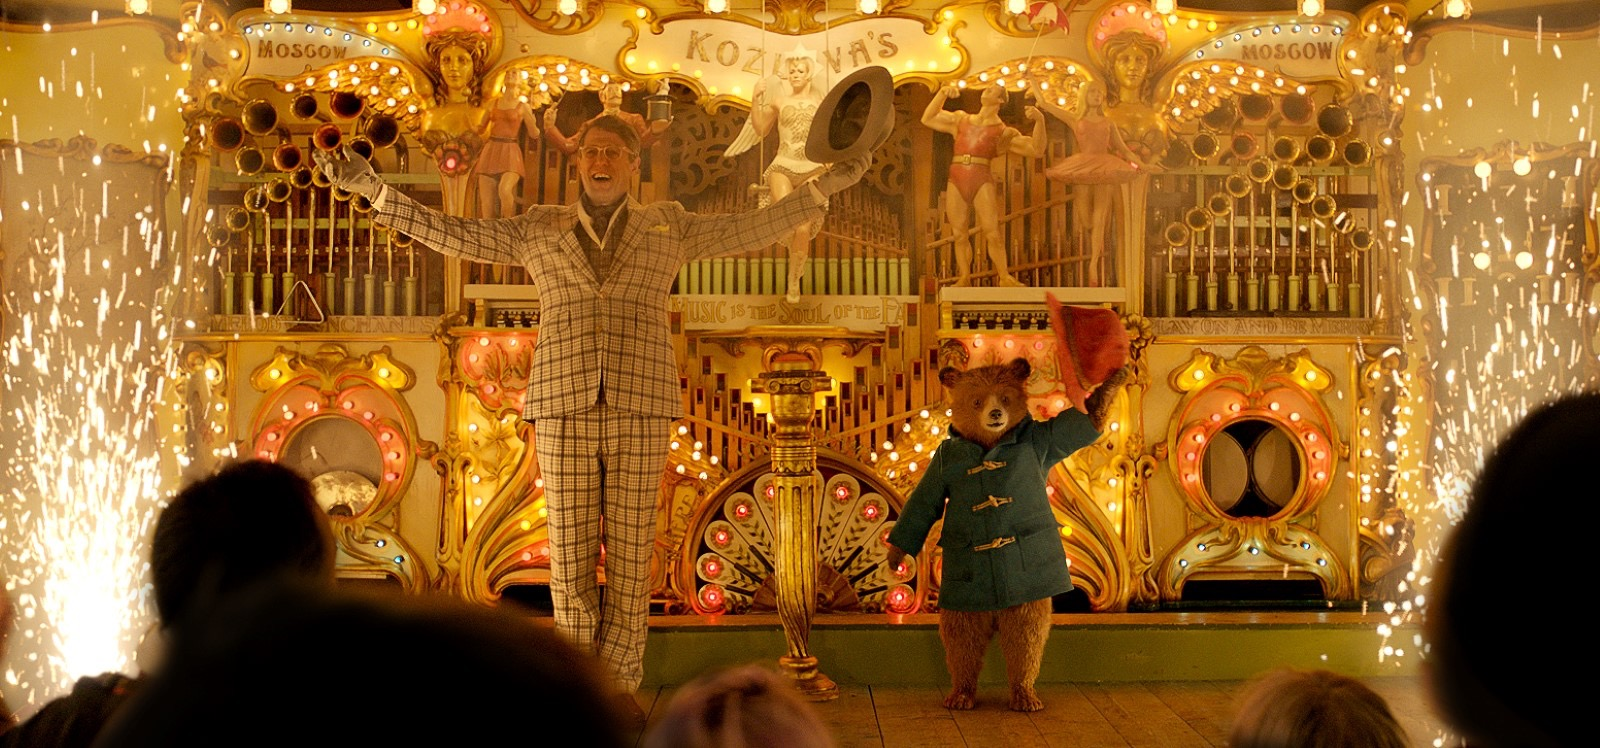 Paddington 2. Kozlova's Steam Organ. Courtesy of Heyday Films. Production Design Gary Williamson. Set Decoration Cathy Cosgrove.